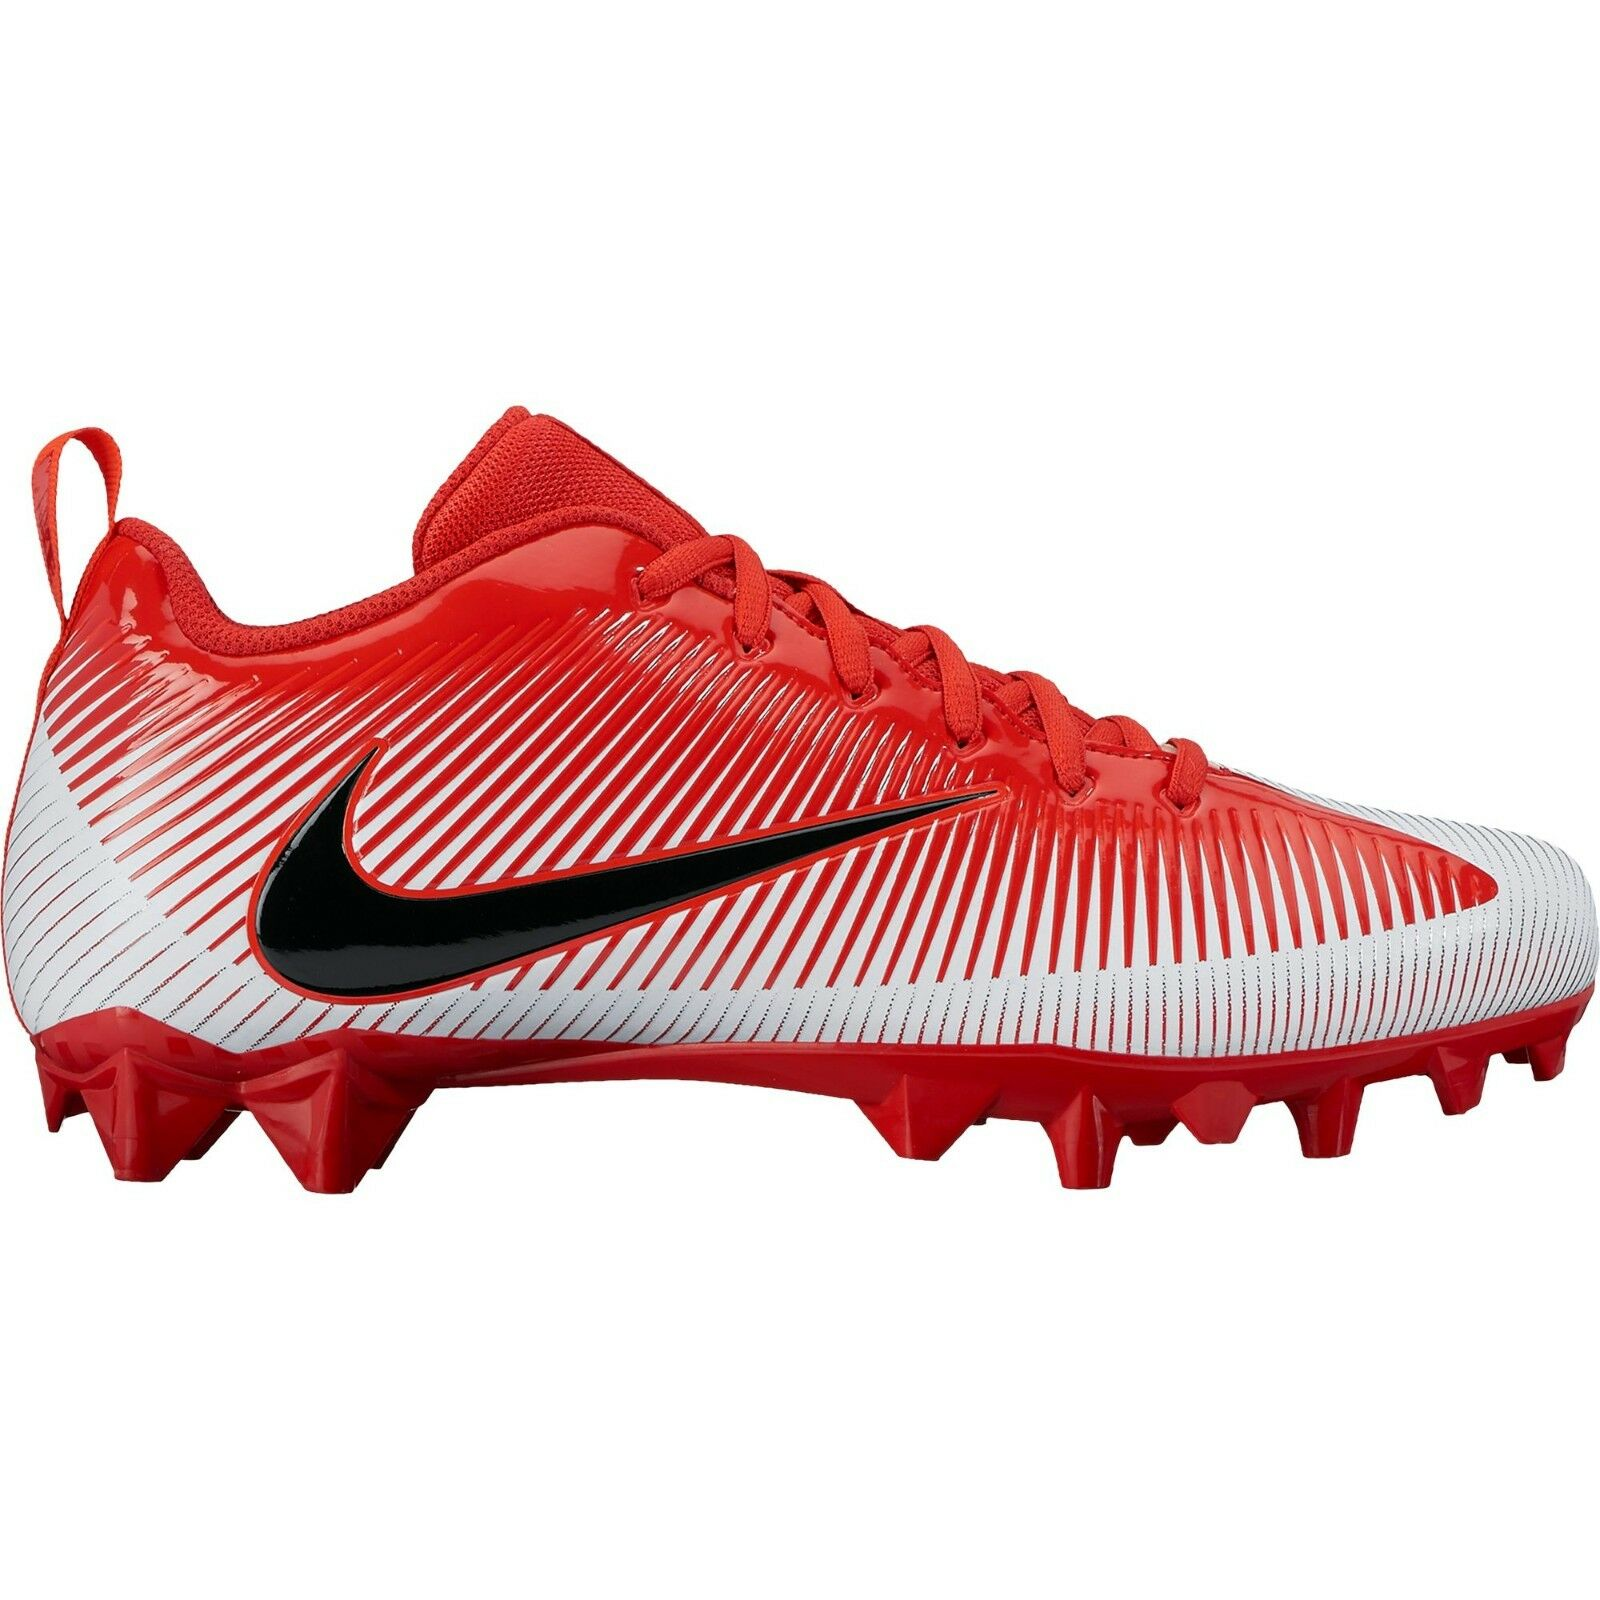 NWOB Men's Nike Vapor Strike 5 TD Football Cleat 823407 New shoes for men and women, limited time discount